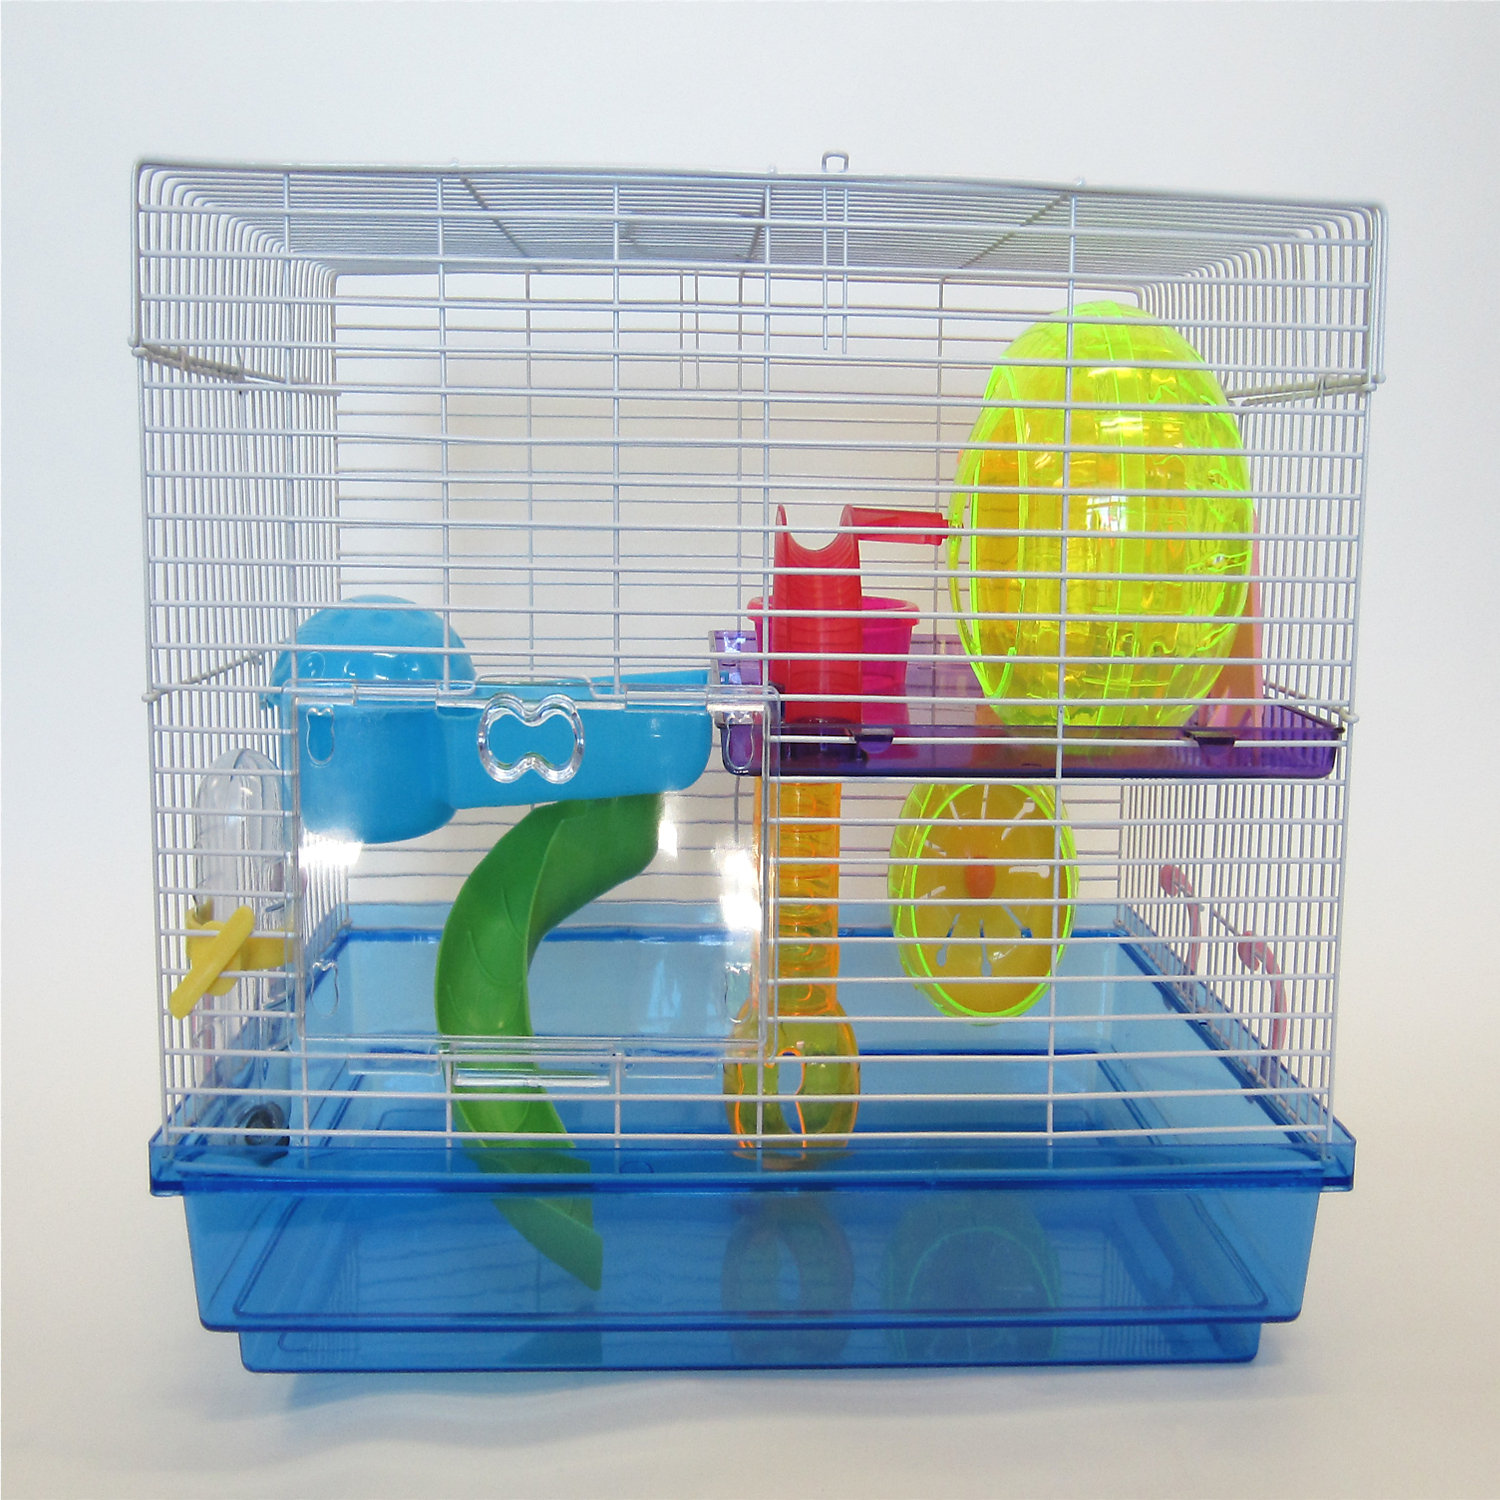 Image of YML Large Hamster Cage in Blue